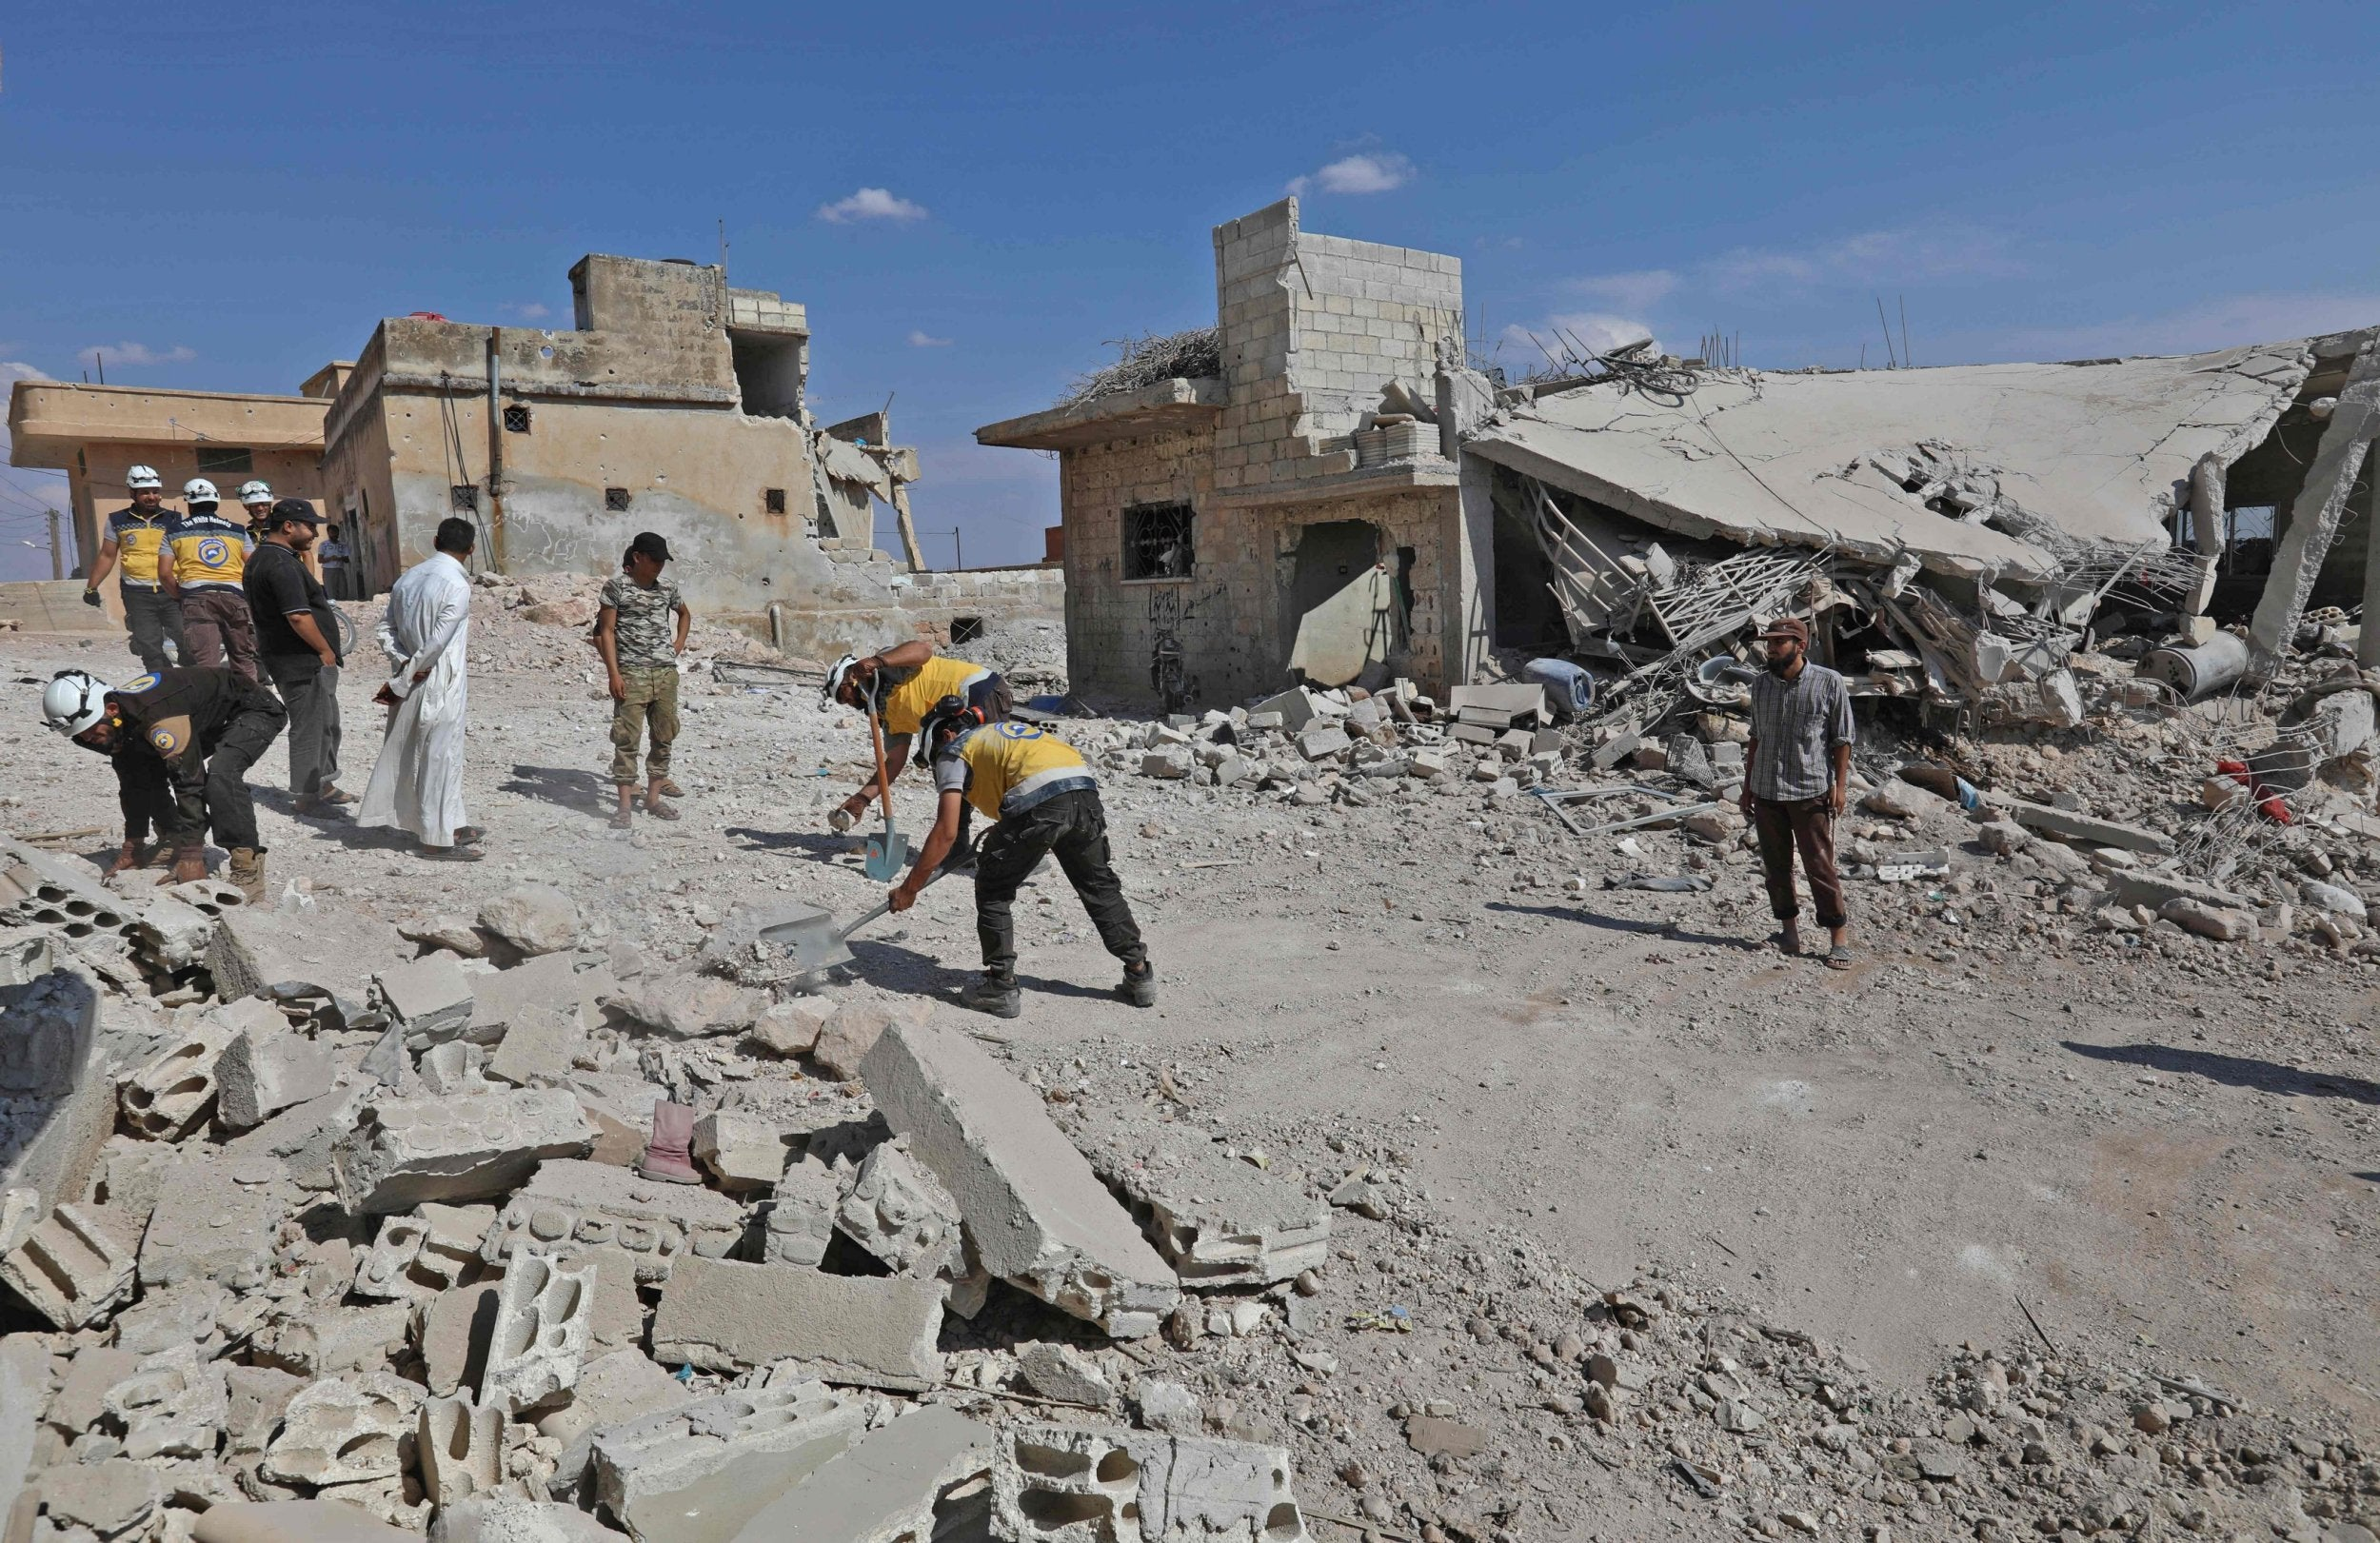 Syria conflict: MPs not guaranteed vote on further military action by UK, minister says